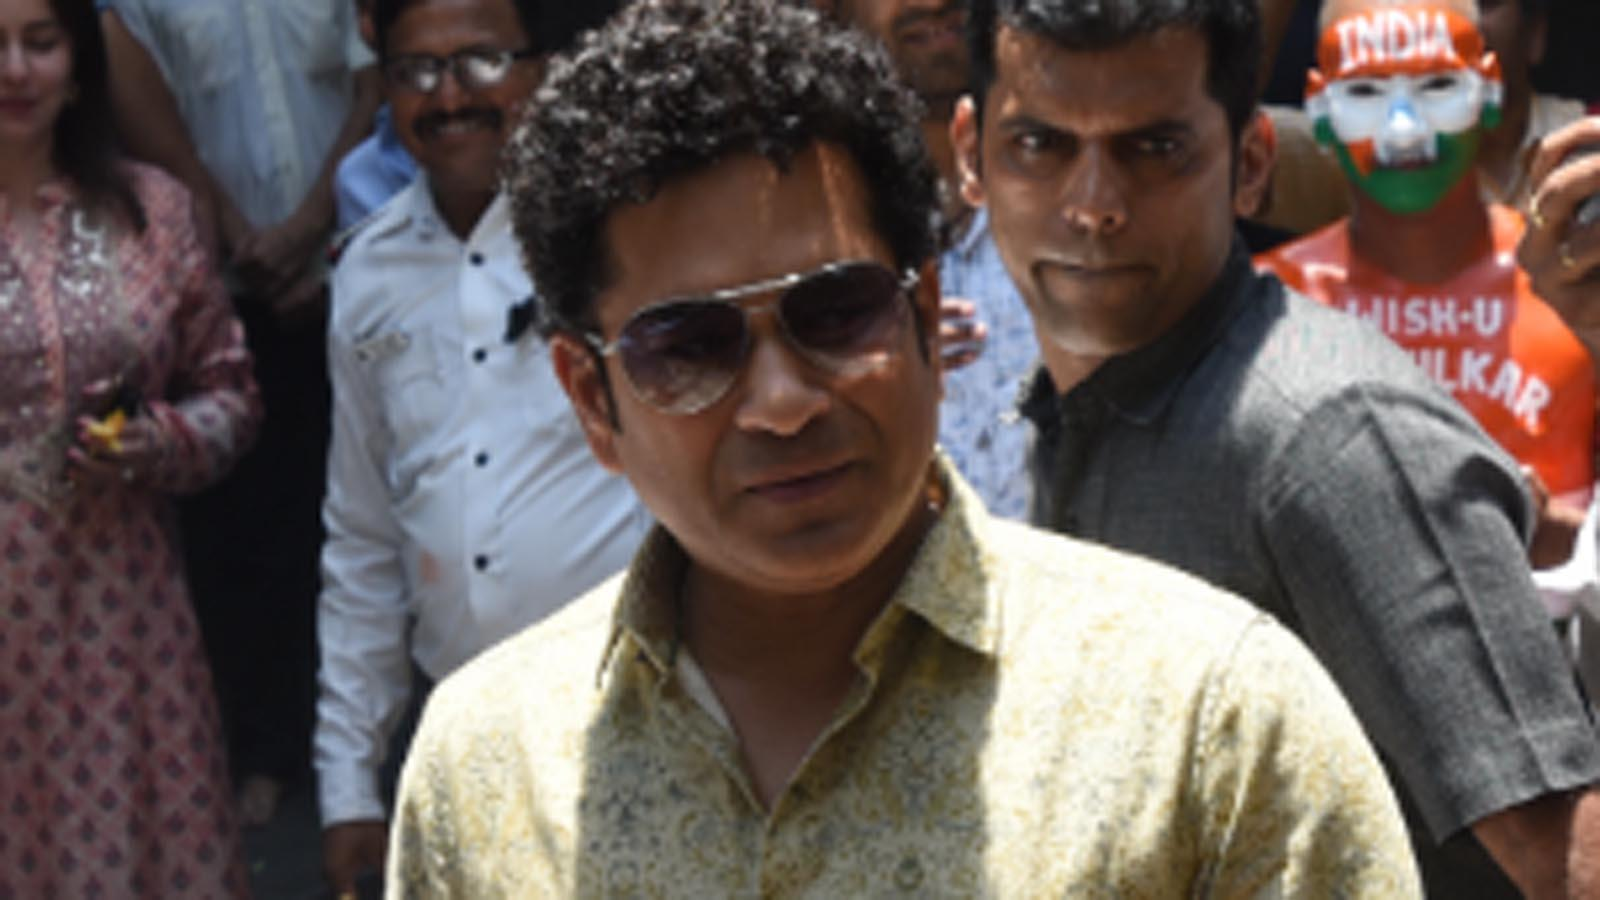 bcci-responsible-for-the-current-situation-sachin-tendulkar-to-ombudsman